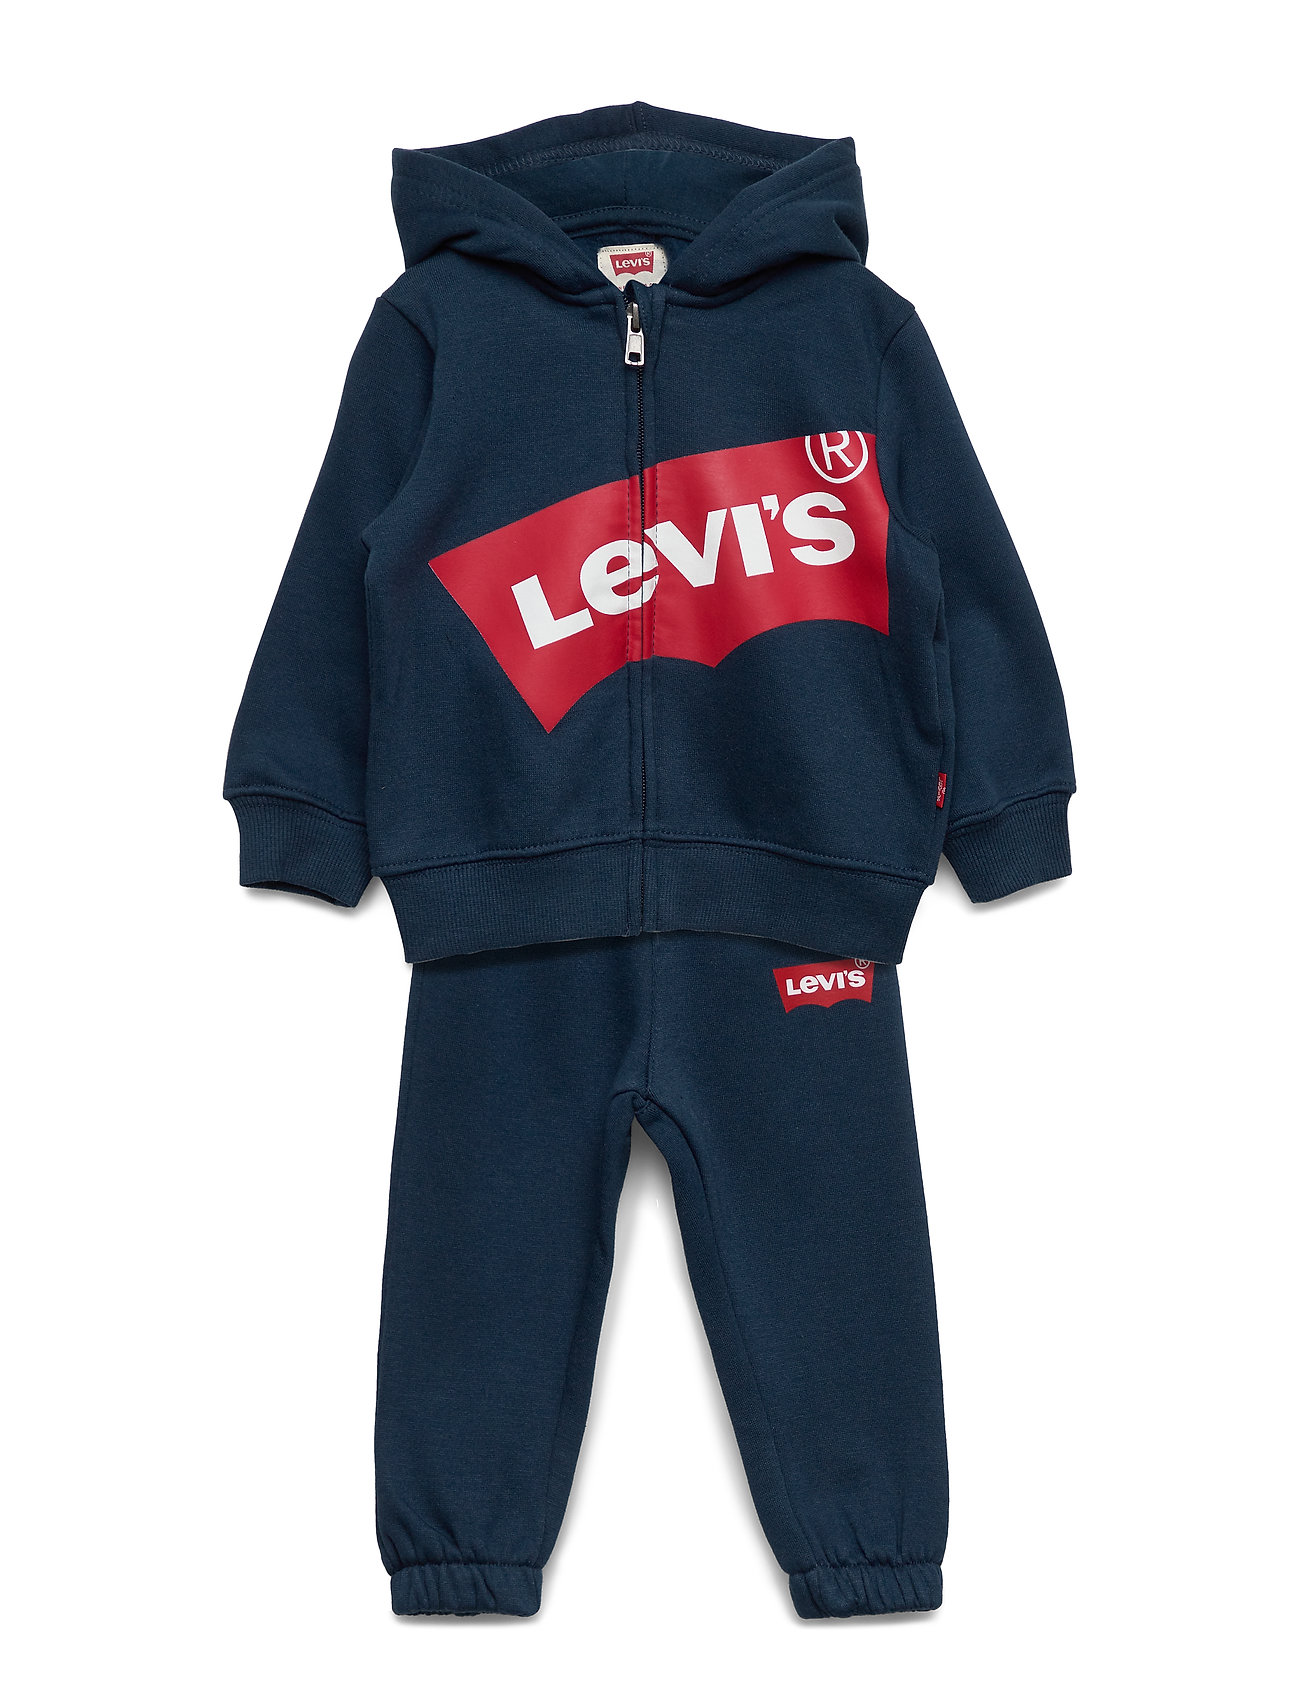 Levi's OUTFIT - DRESS BLUES